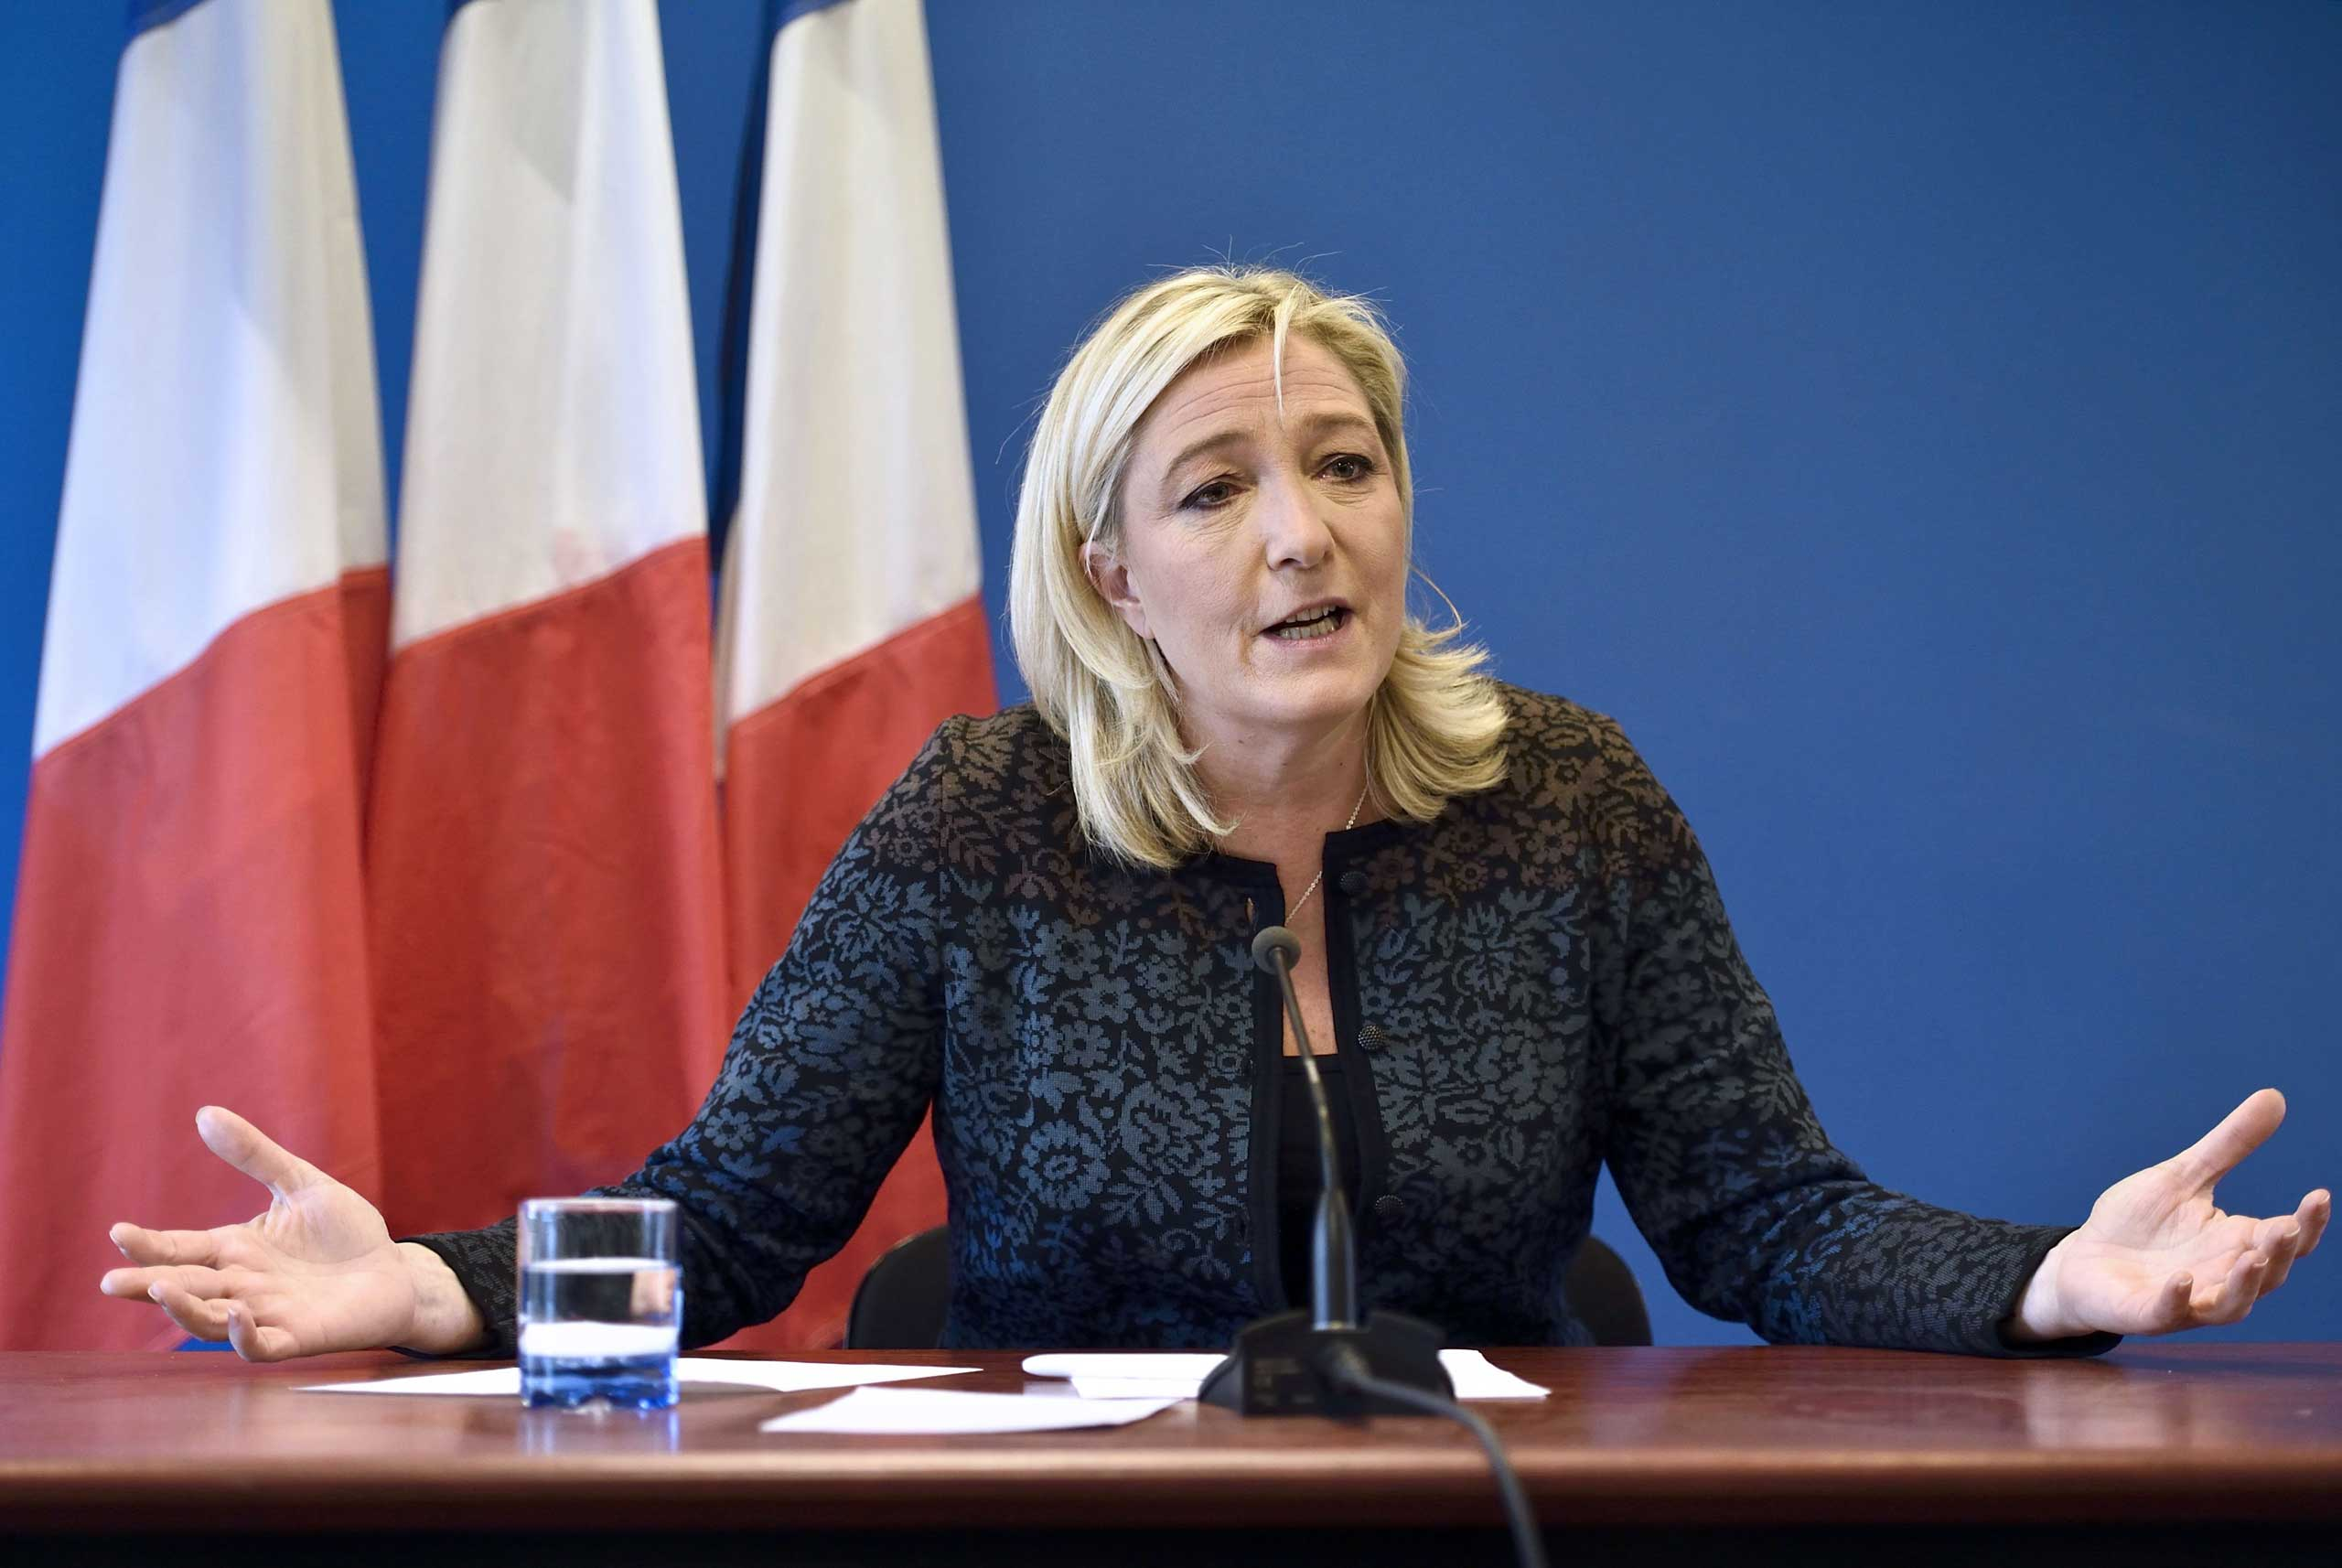 National Front president Marine Le Pen gives a press conference on Nov. 7, 2014 in Nanterre, near Paris.